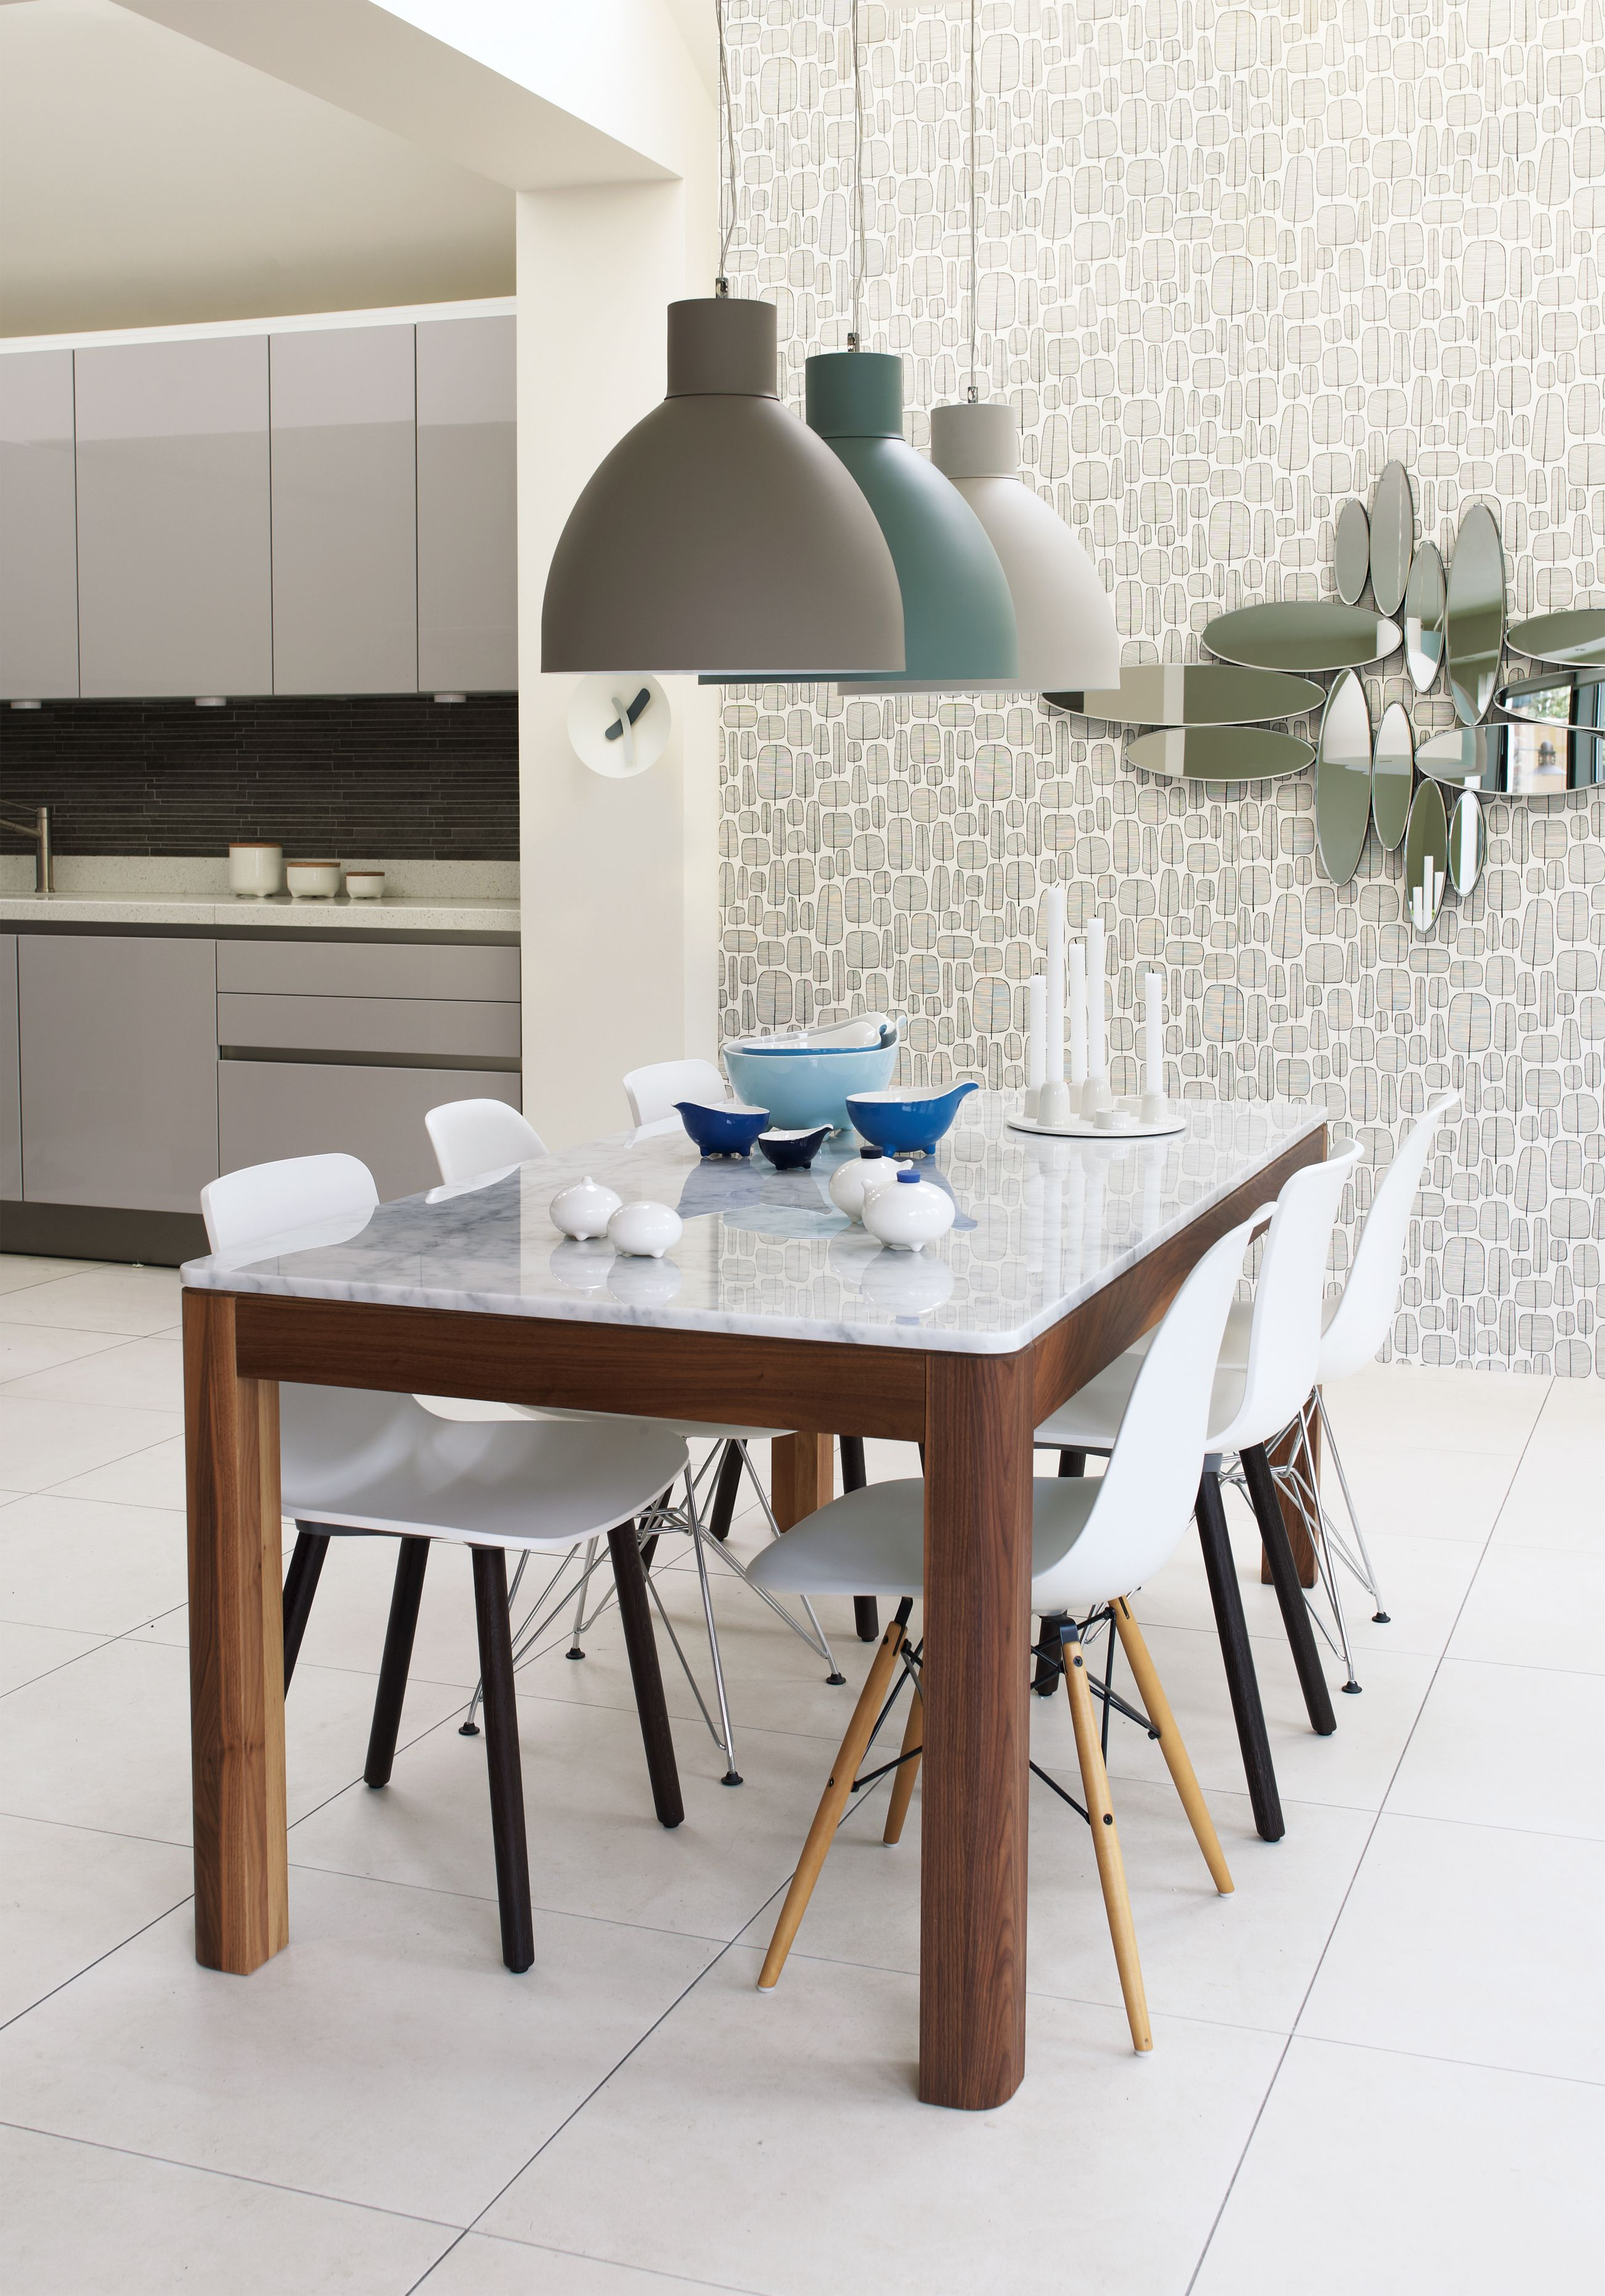 In the kitchen invest in a trio of contrast metal pendant lights in